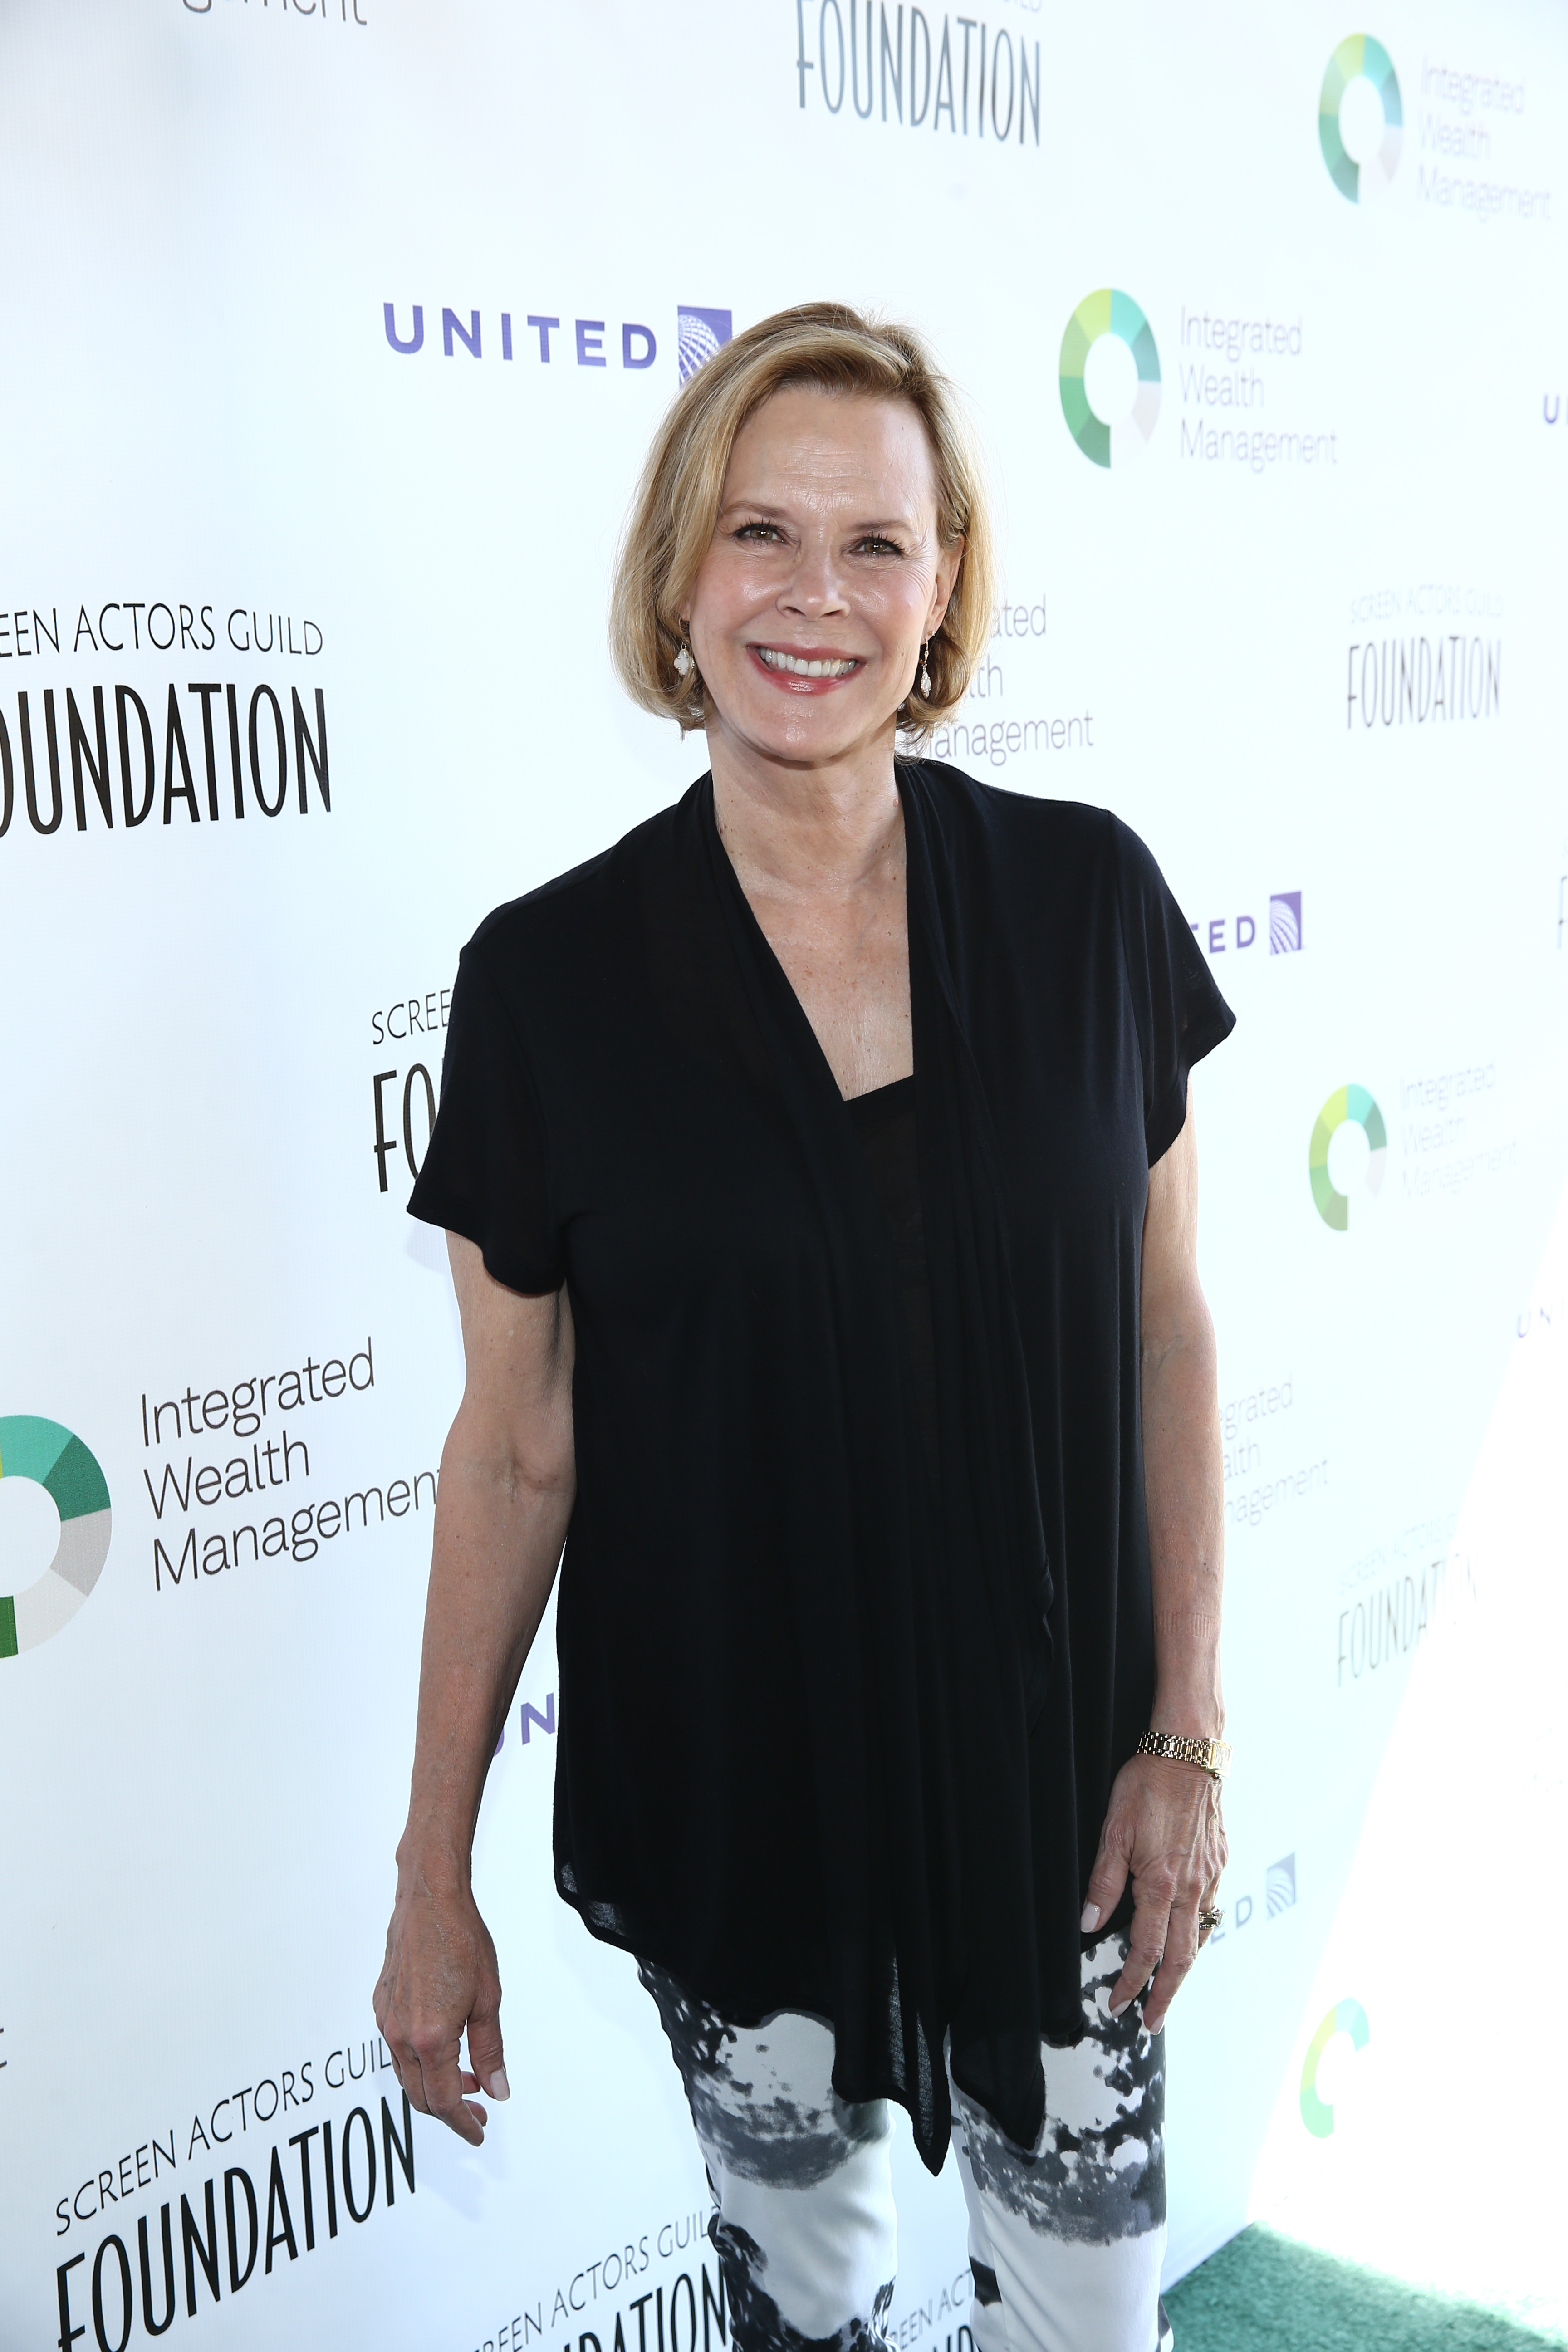 SAG Foundation President JoBeth Williams attends The Screen Actors Guild Foundation's 6th Annual Los Angeles Golf Classic on June 8, 2015 in Burbank, California. (Photo by Mark Davis/Getty Images for The Screen Actors Guild Foundation)